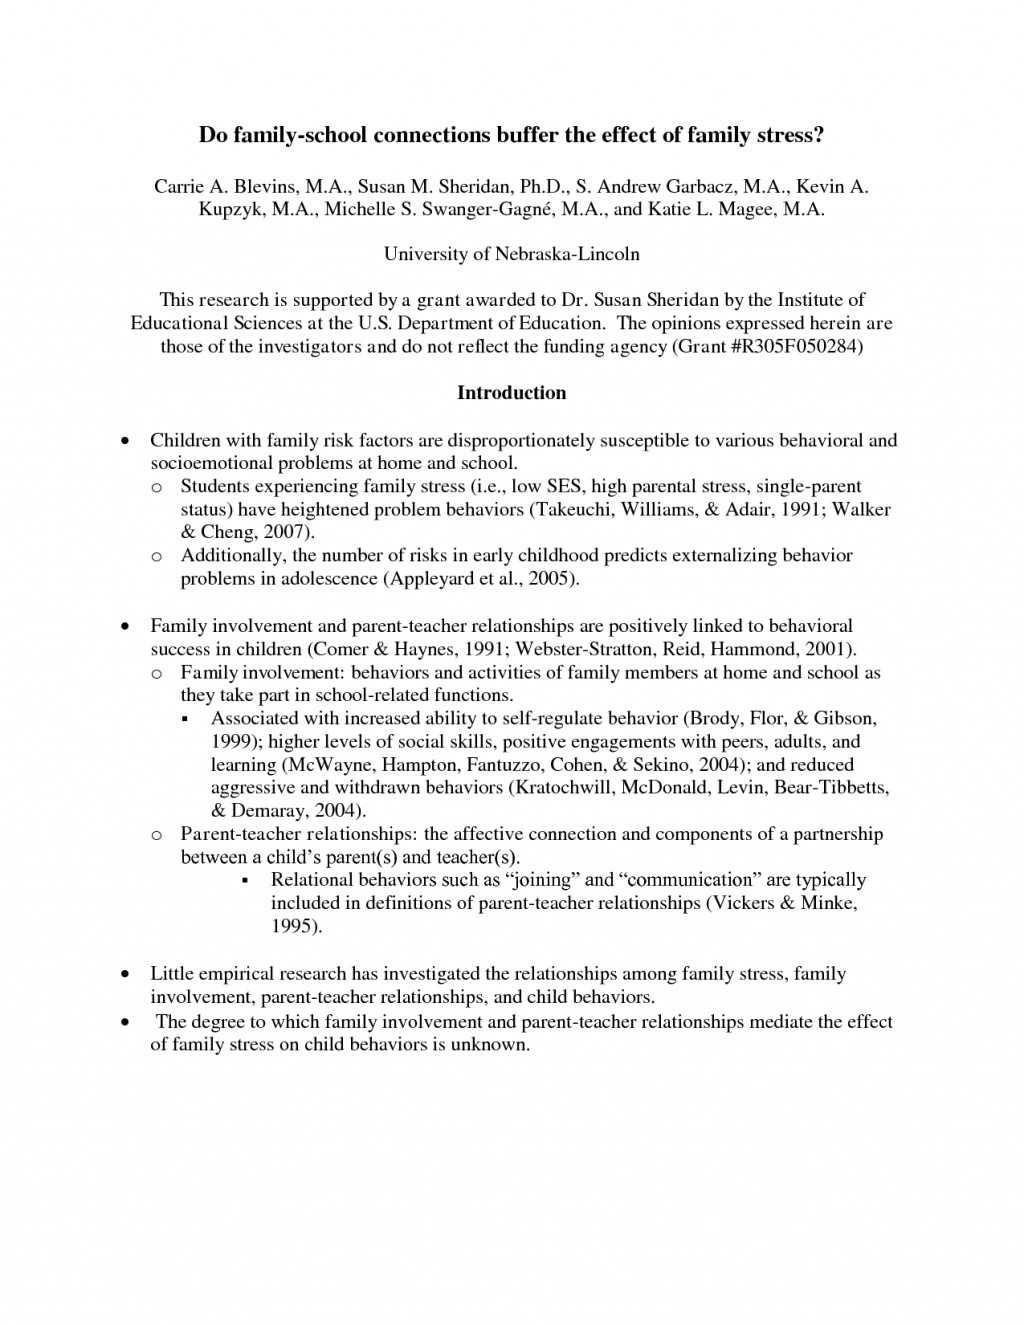 007 Components Of Research Paper Apa Fascinating A In Format Large